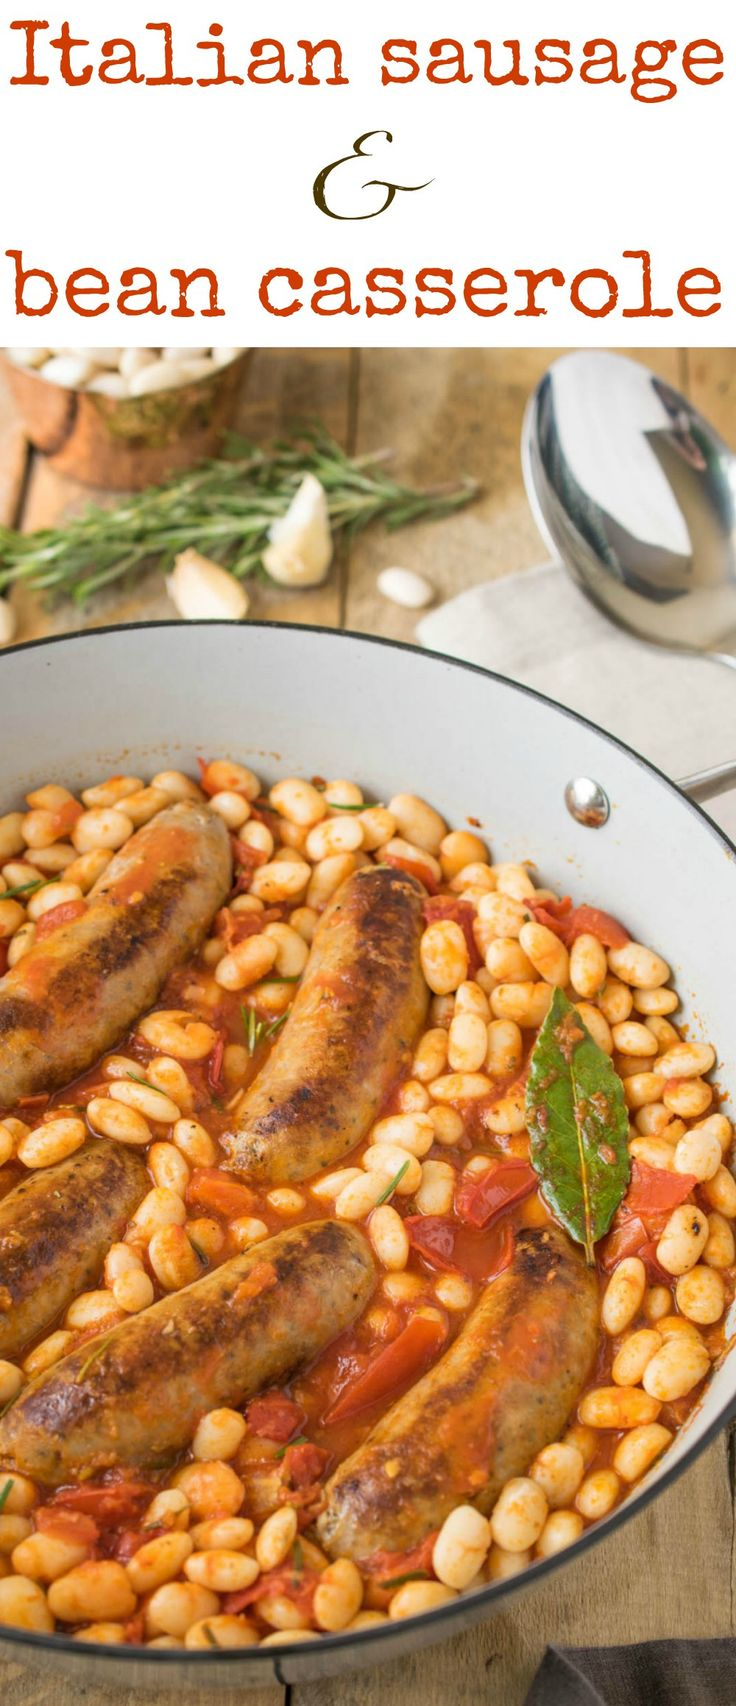 Italian sausage and bean casserole is delicious and easy comfort food all made in one pan. Sweet Italian sausage is cooked with cannellini beans, fresh Roma tomatoes and fresh rosemary for a flavorful, warming and comforting dish.